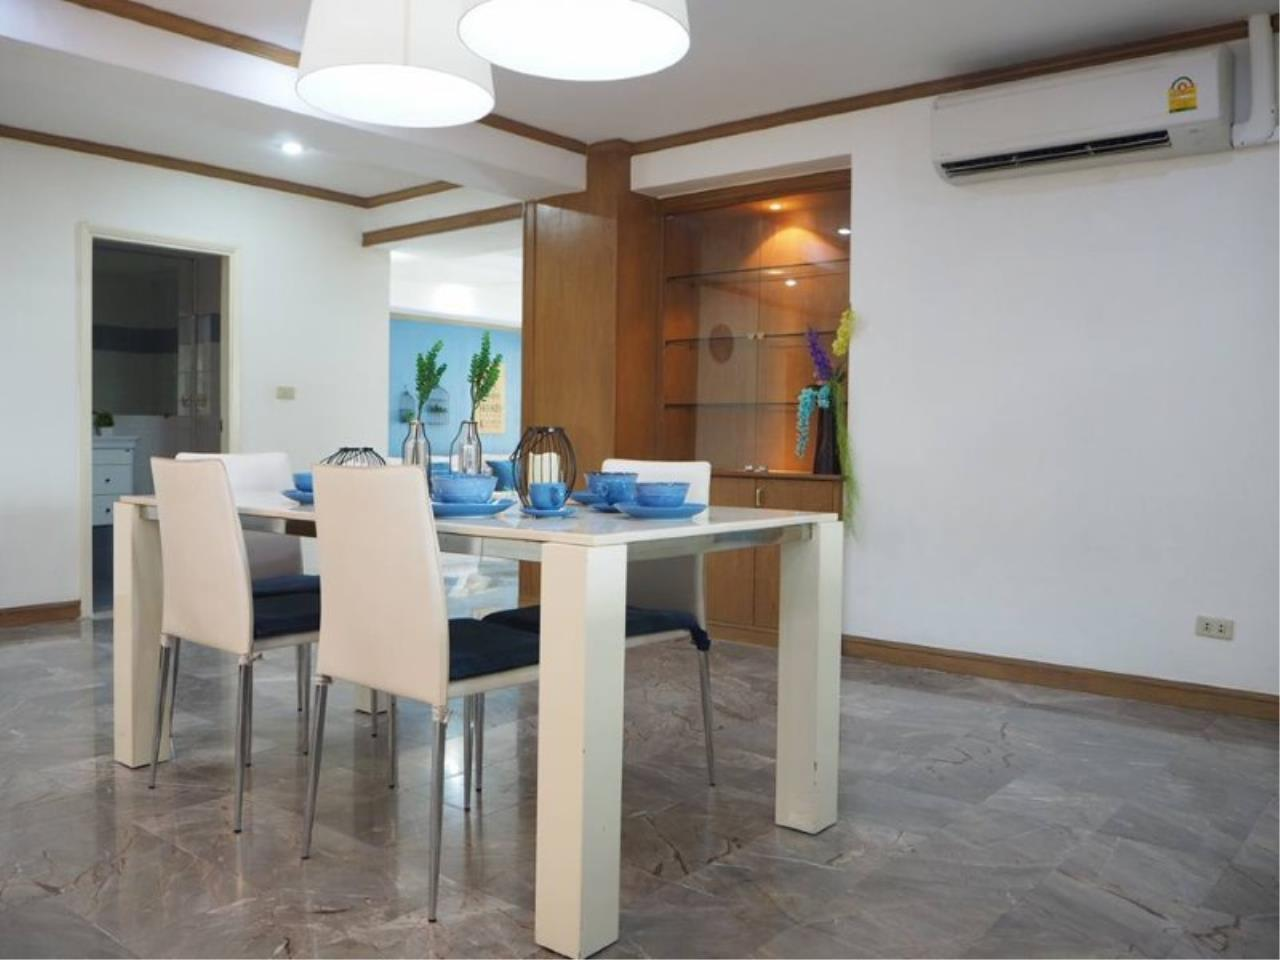 RE/MAX All Star Realty Agency's Royal Castle 4bed 4bath 202sqm for rent (BTS Phrom Phong) 7